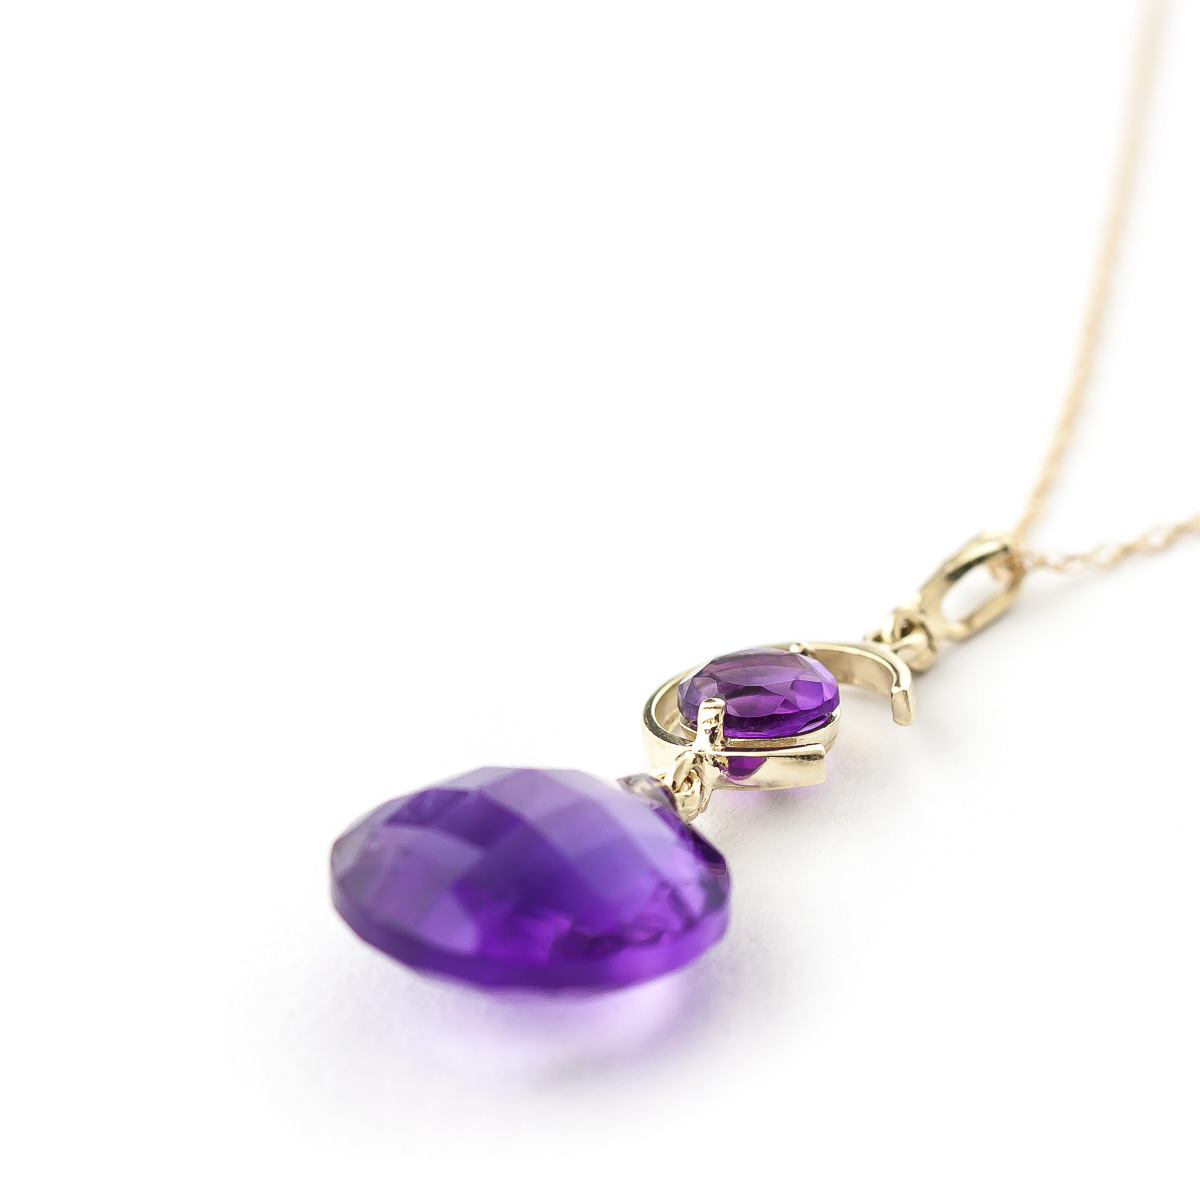 Round Brilliant Cut Amethyst Pendant Necklace 5.8ctw in 9ct Gold